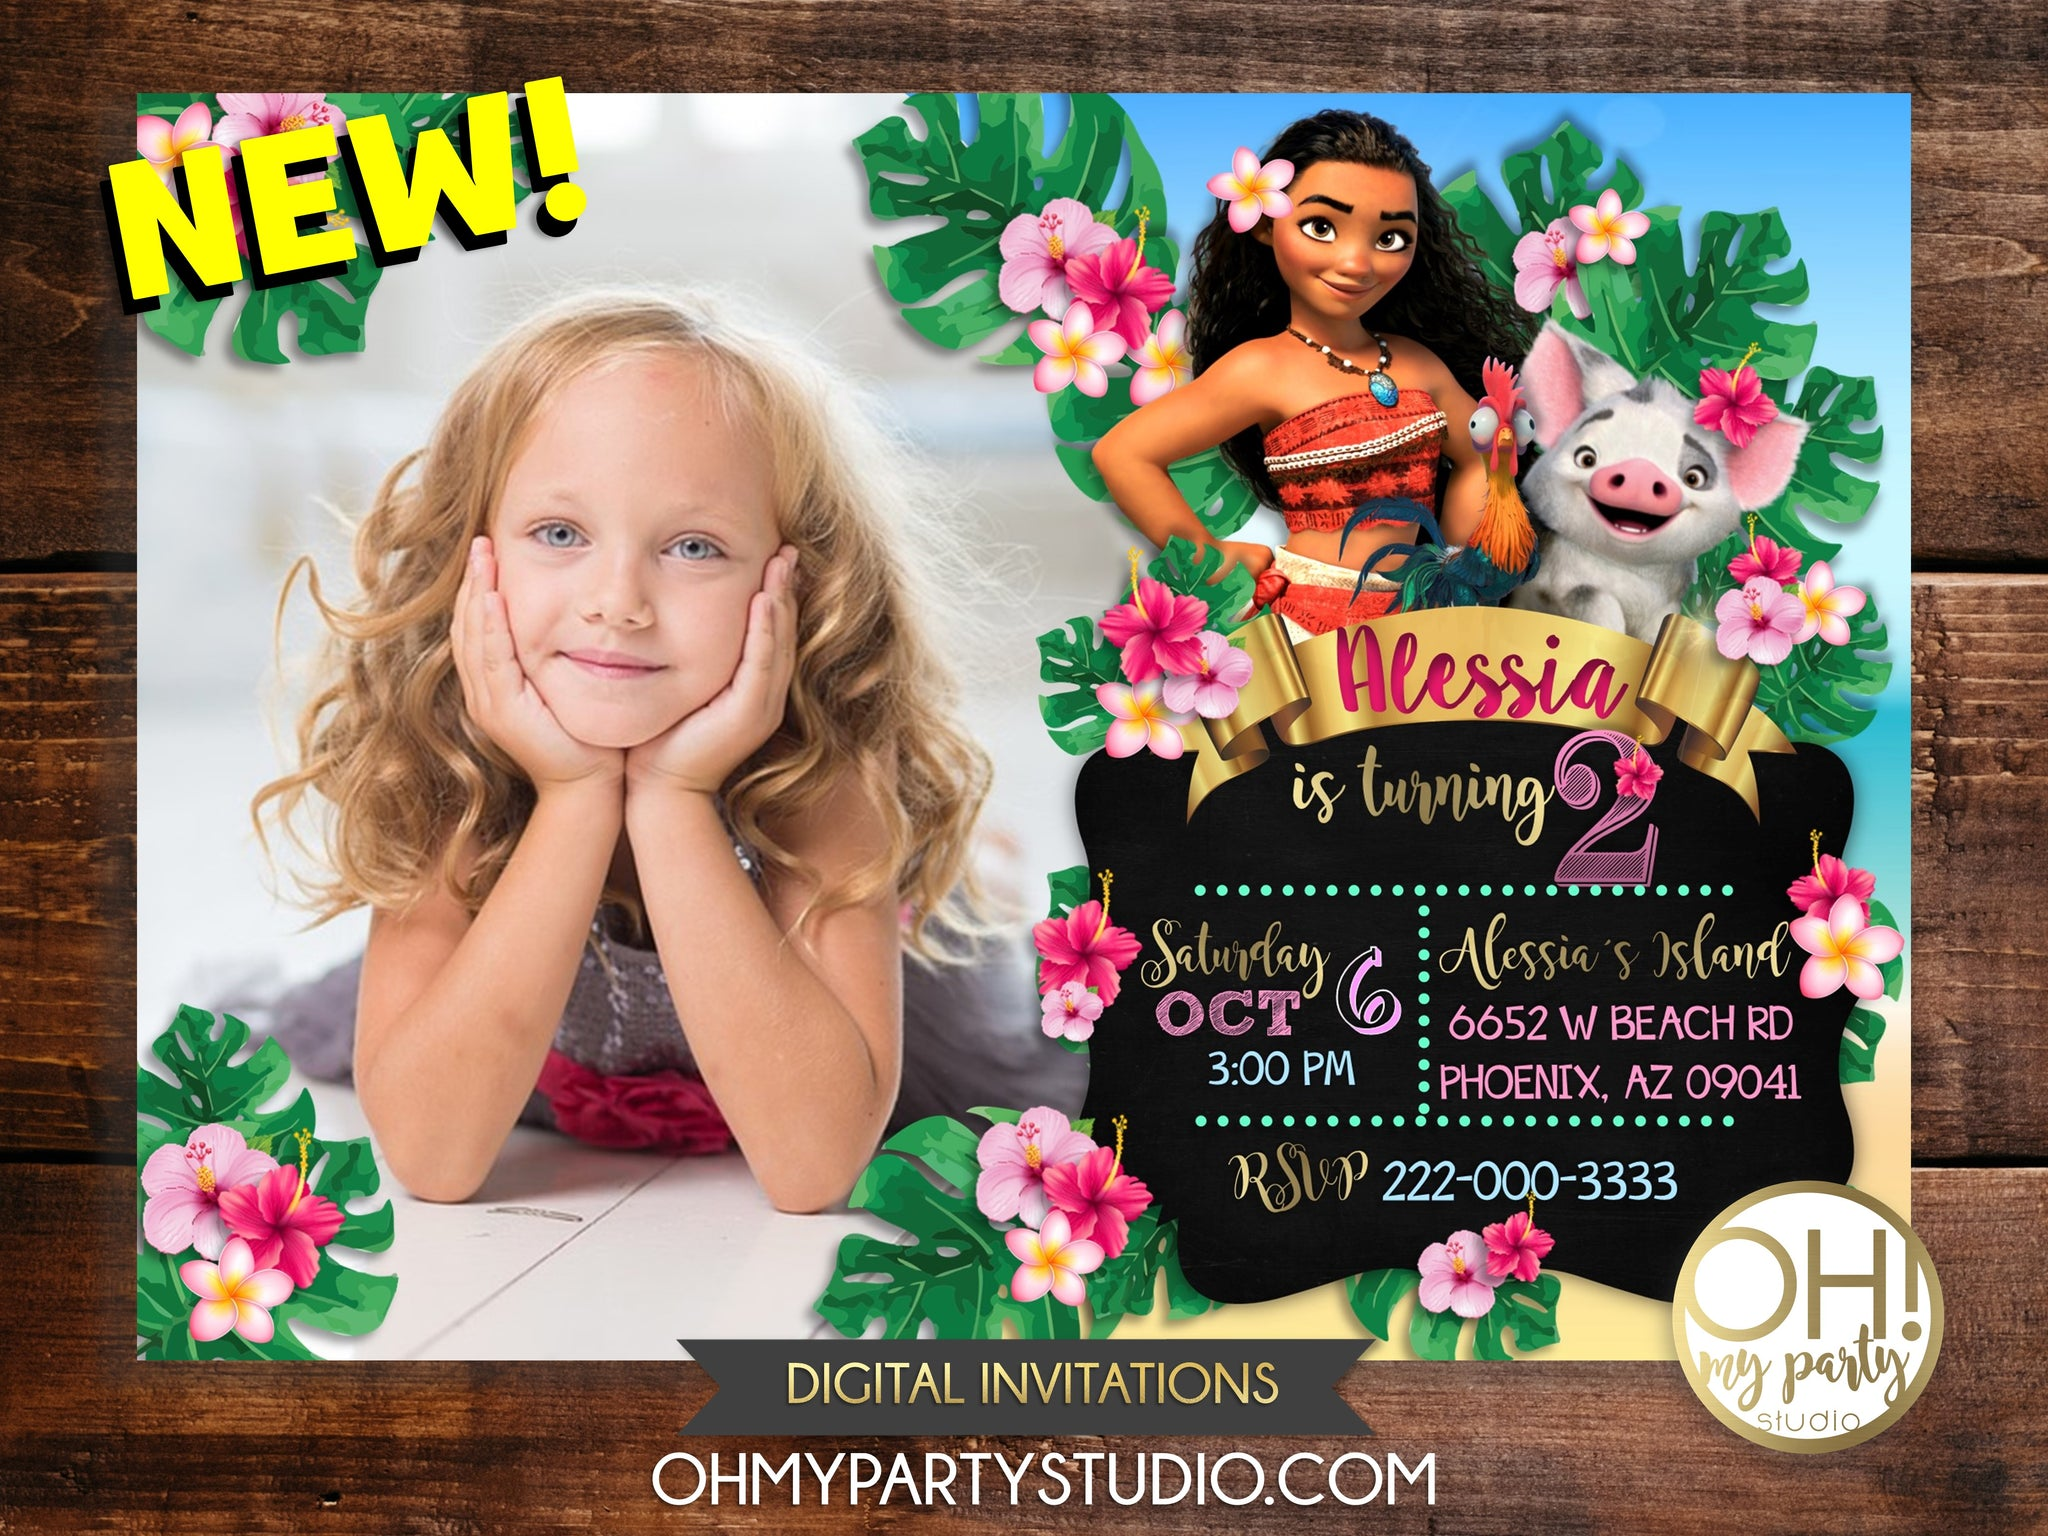 MOANA INVITATION, MOANA BIRTHDAY PARTY,MOANA INVITATION DIGITAL, MOANA INVITATIONS, MOANA PARTY THEME, MOANA PARTY IDEAS, MOANA INVITE, MOANA CARD